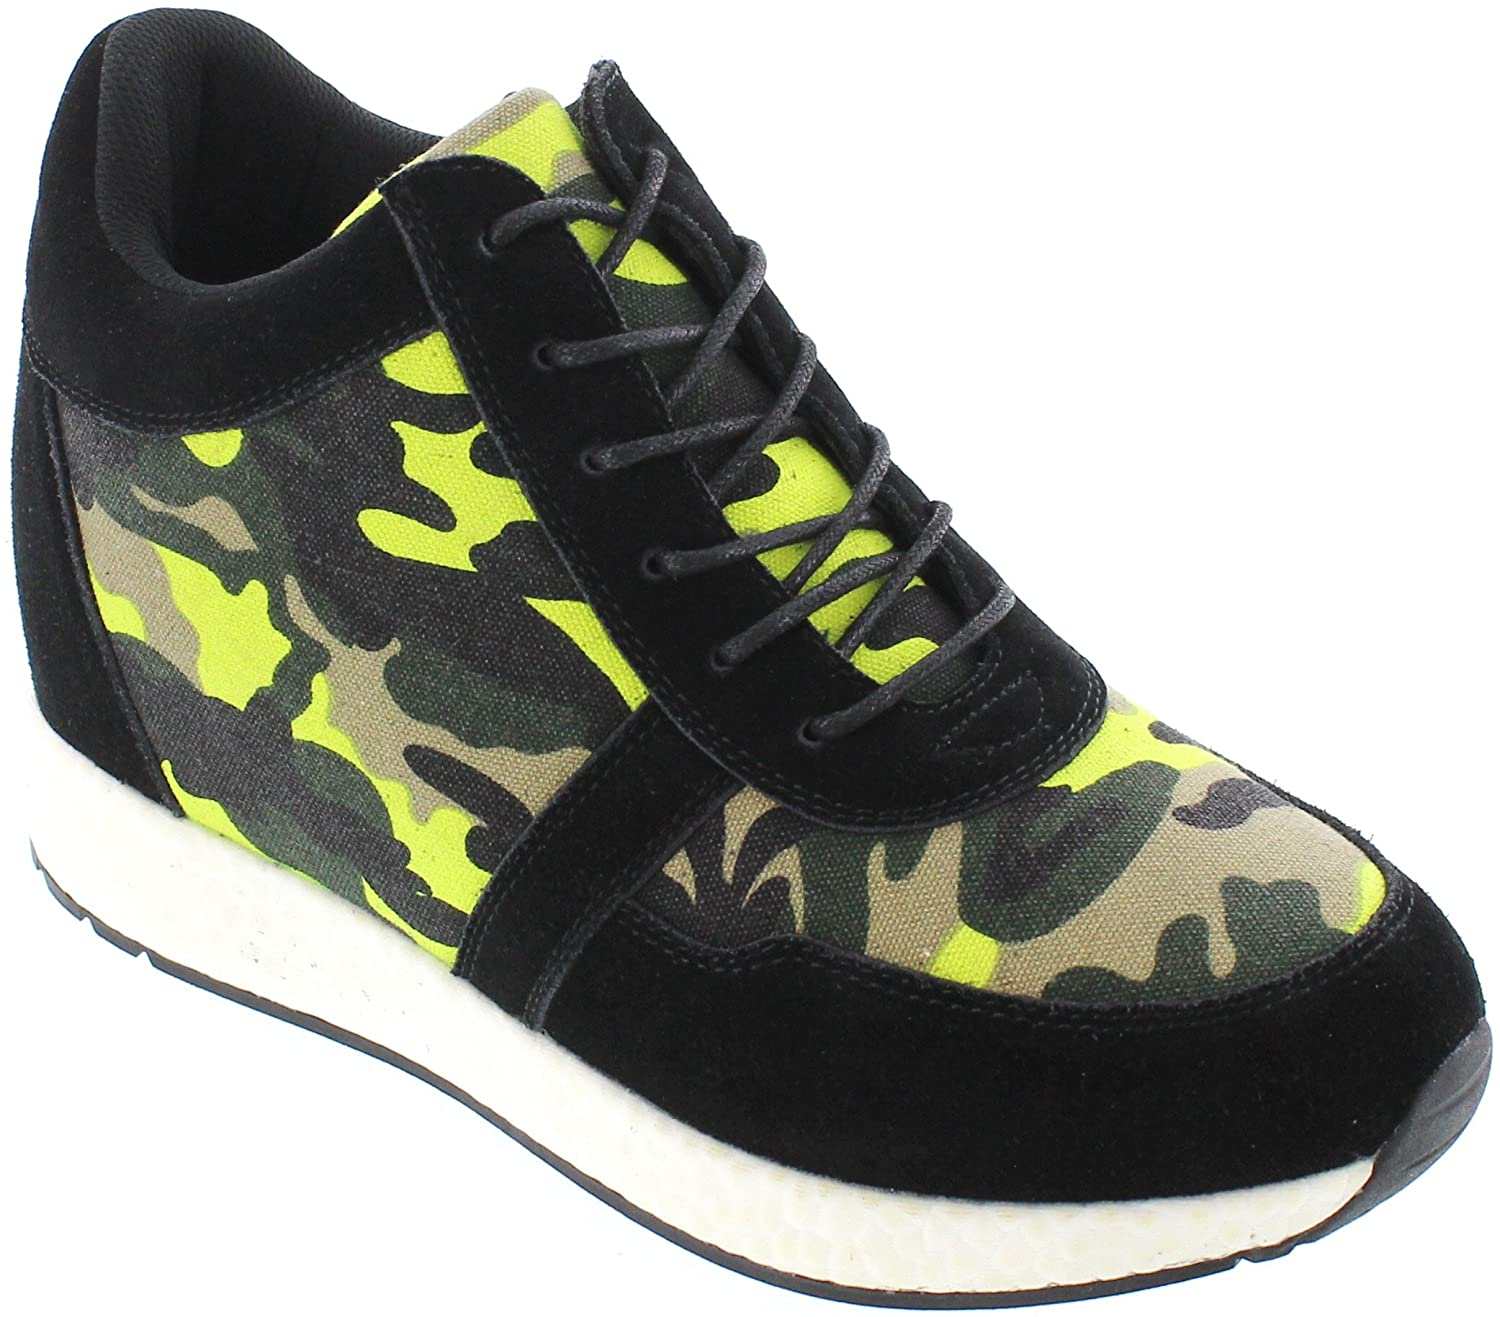 CALTO Men's Invisible Height Increasing Elevator Shoes - Camo Black/Yellow Canvas Lightweight Lace-up Casual Trainers Sneakers - 3.2 Inches Taller - H2244